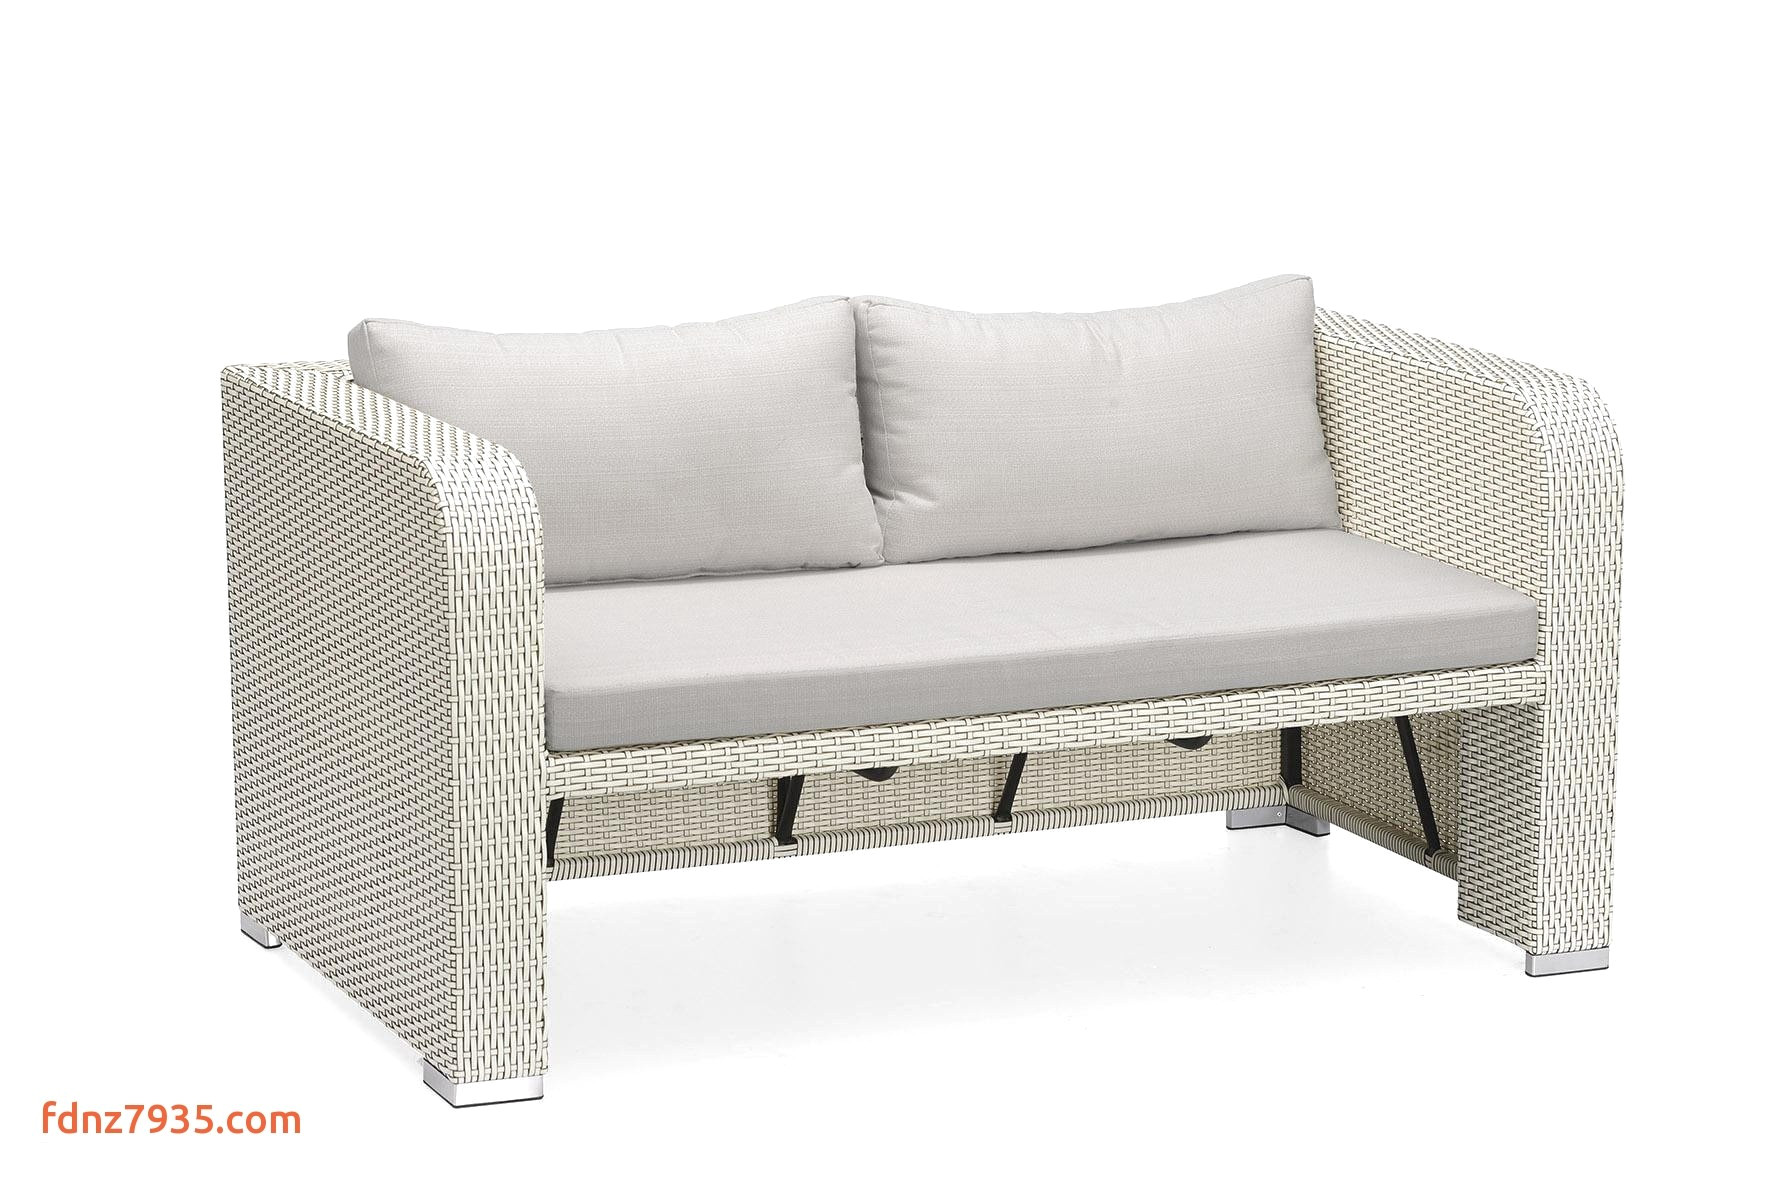 wicker sectional patio furniture awesome furniture outdoor loveseat elegant wicker outdoor sofa 0d patio pottery barn